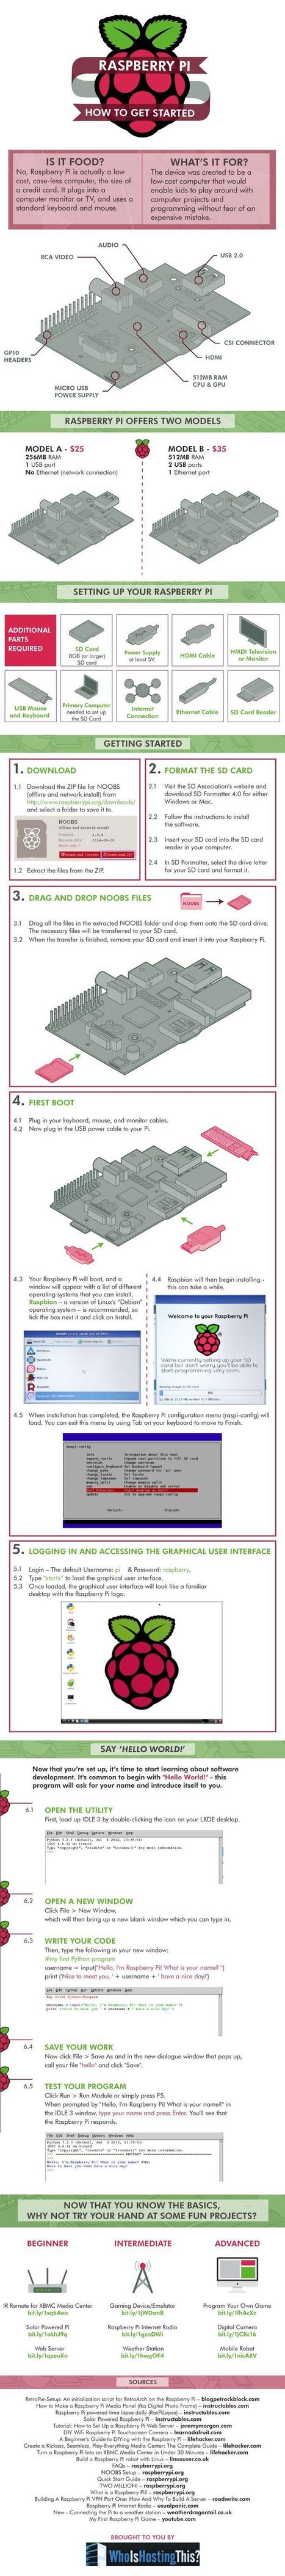 Raspberry Pi: How To Get Started | Raspberry Pi | Scoop.it